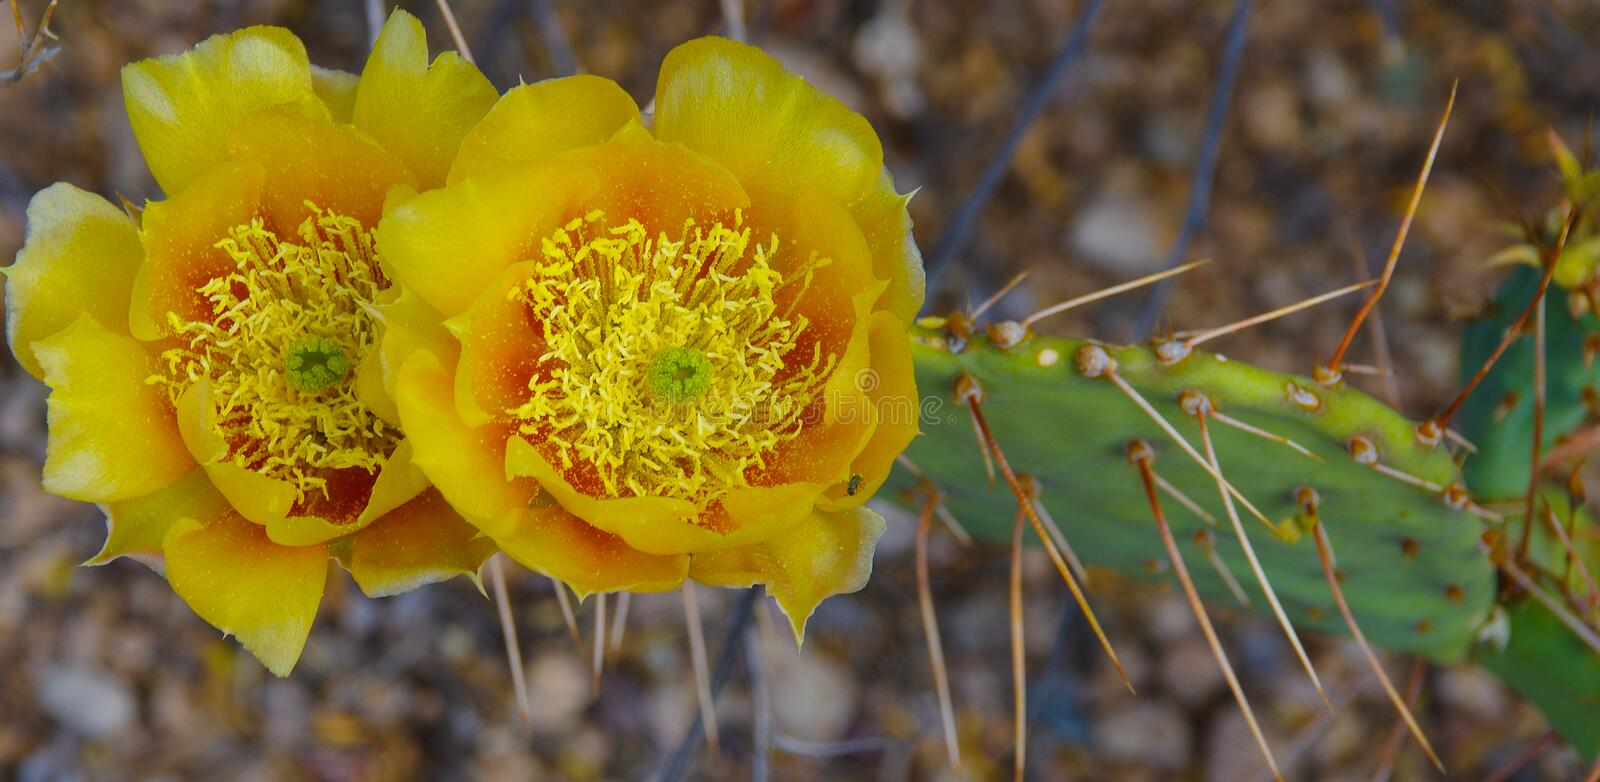 Closeup of yellow blossoms with abundant pollen on a prickly pear cactus stock images